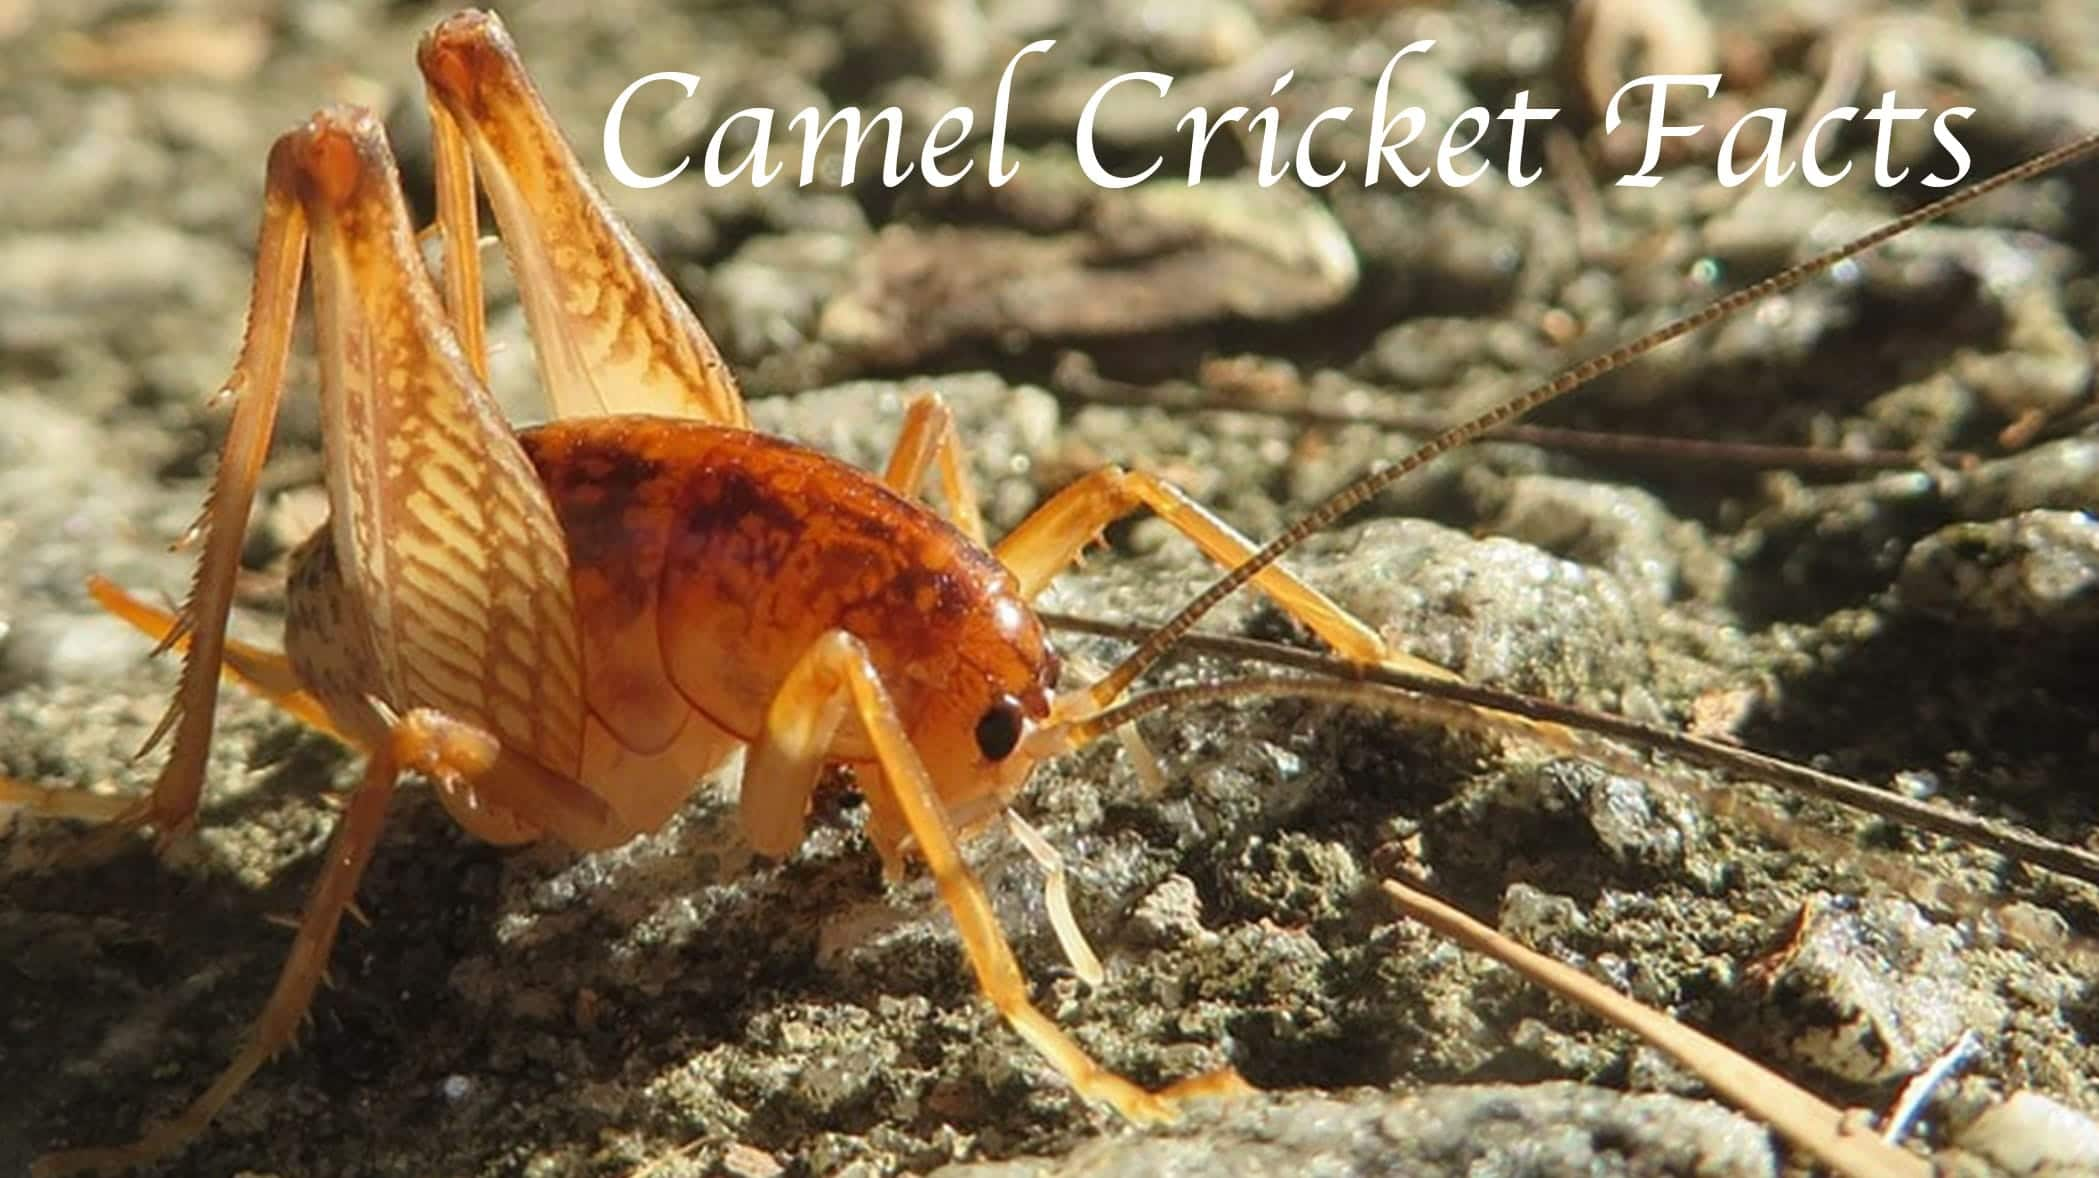 camel-cricket-facts